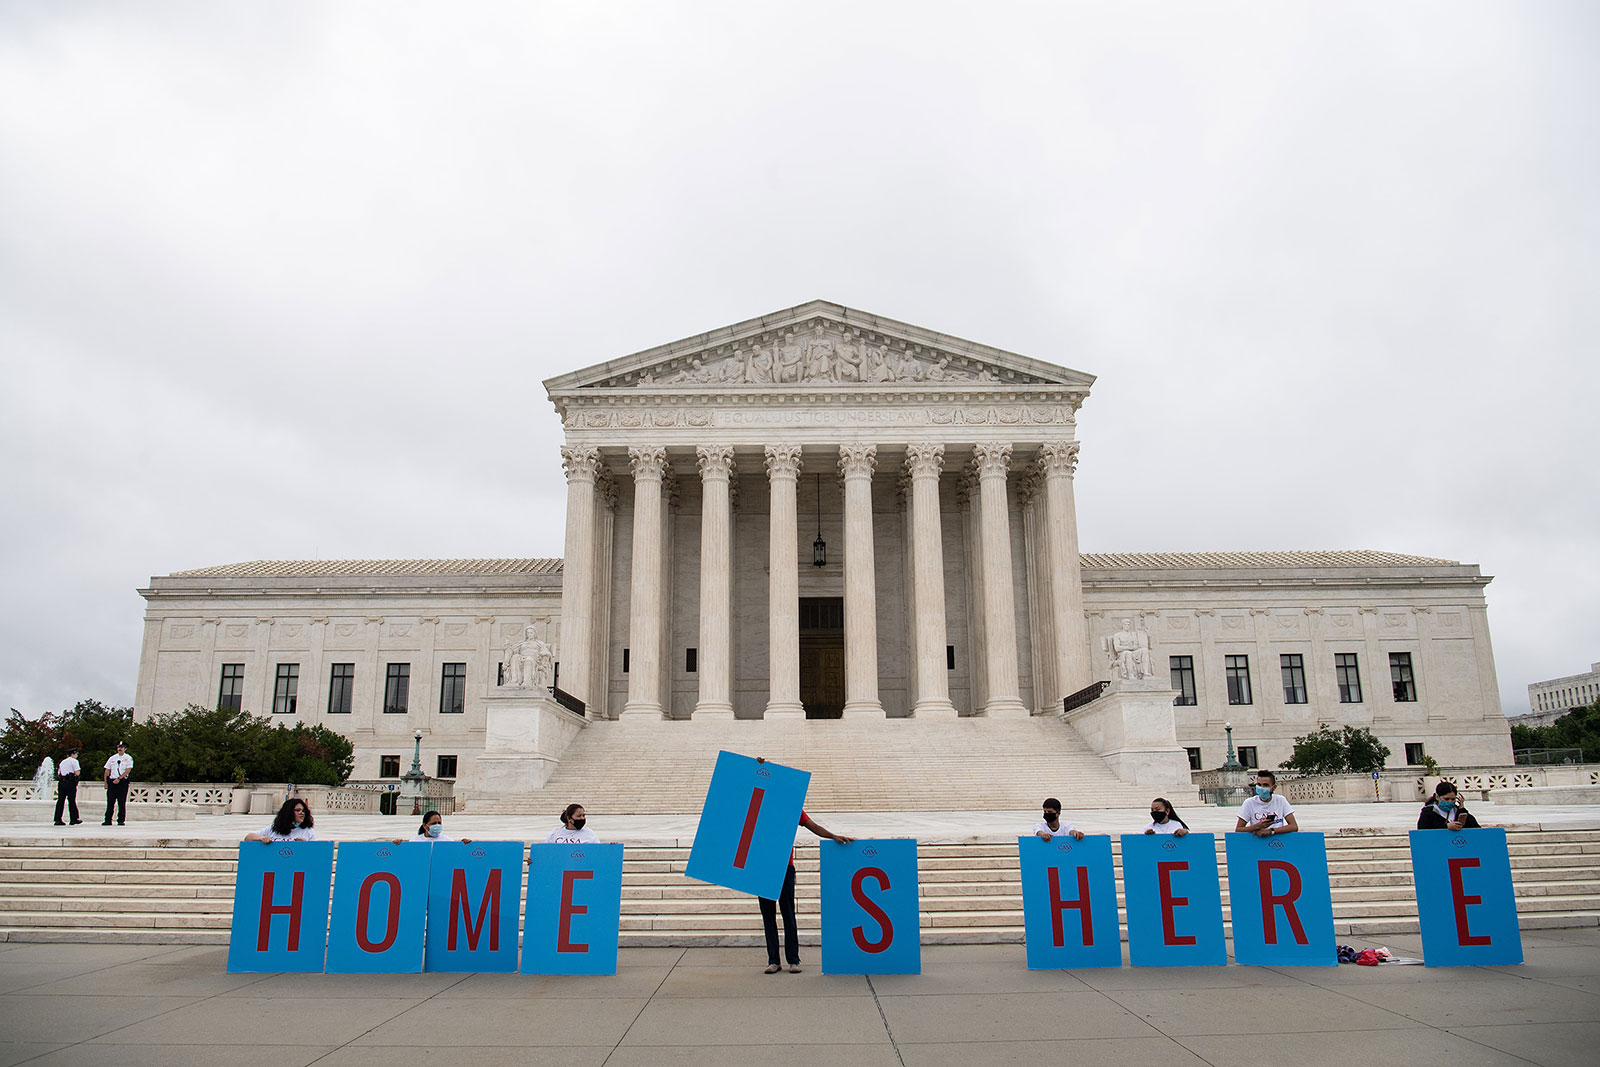 Activists hold a banner in front of the Supreme Court in Washington, DC, on June 18. In a 5-4 ruling Thursday, the Supreme Court blocked the Trump administration's attempt to end DACA.